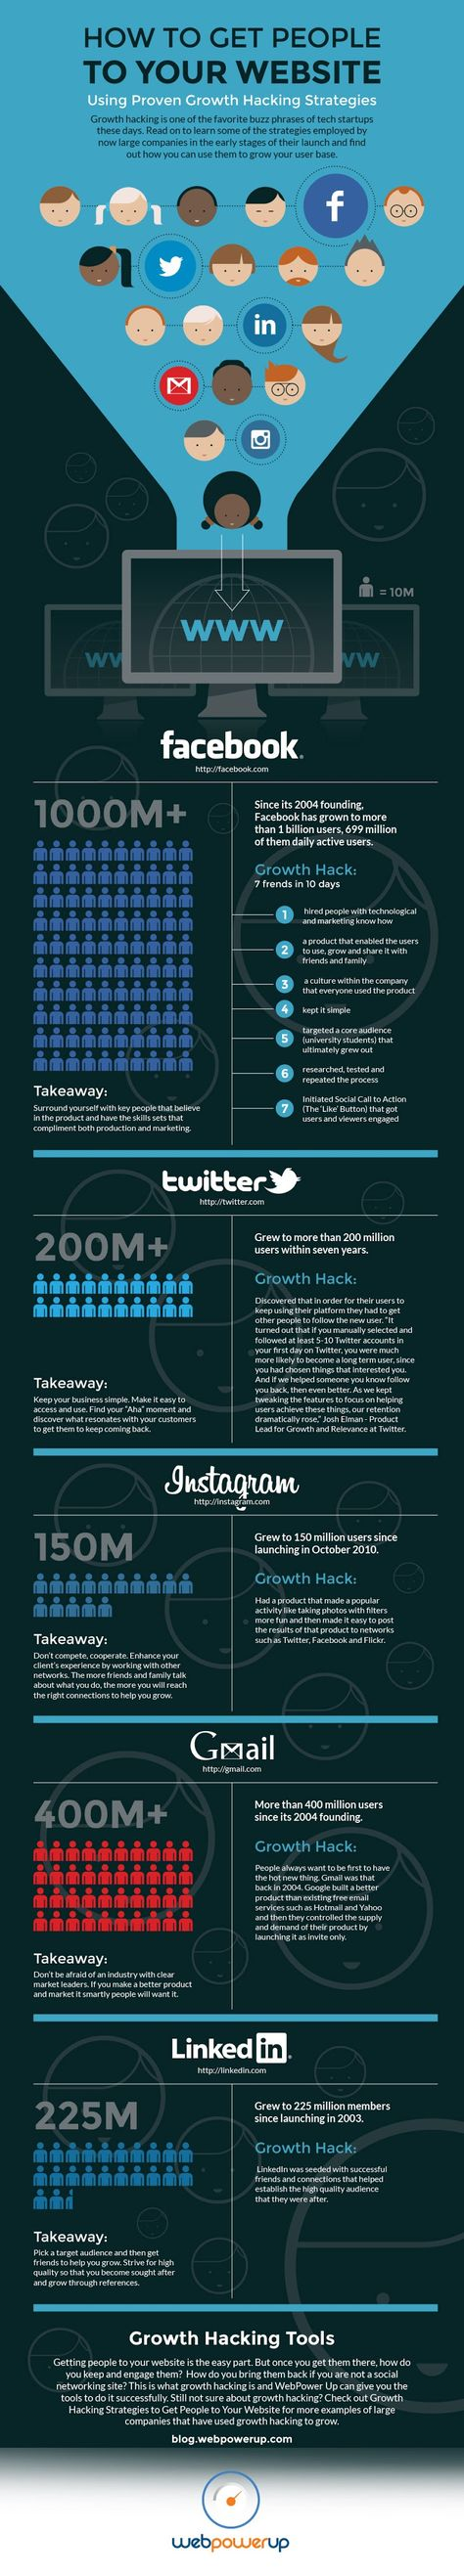 Growth Hacking Strategies To Get People To Your Website - #infographic